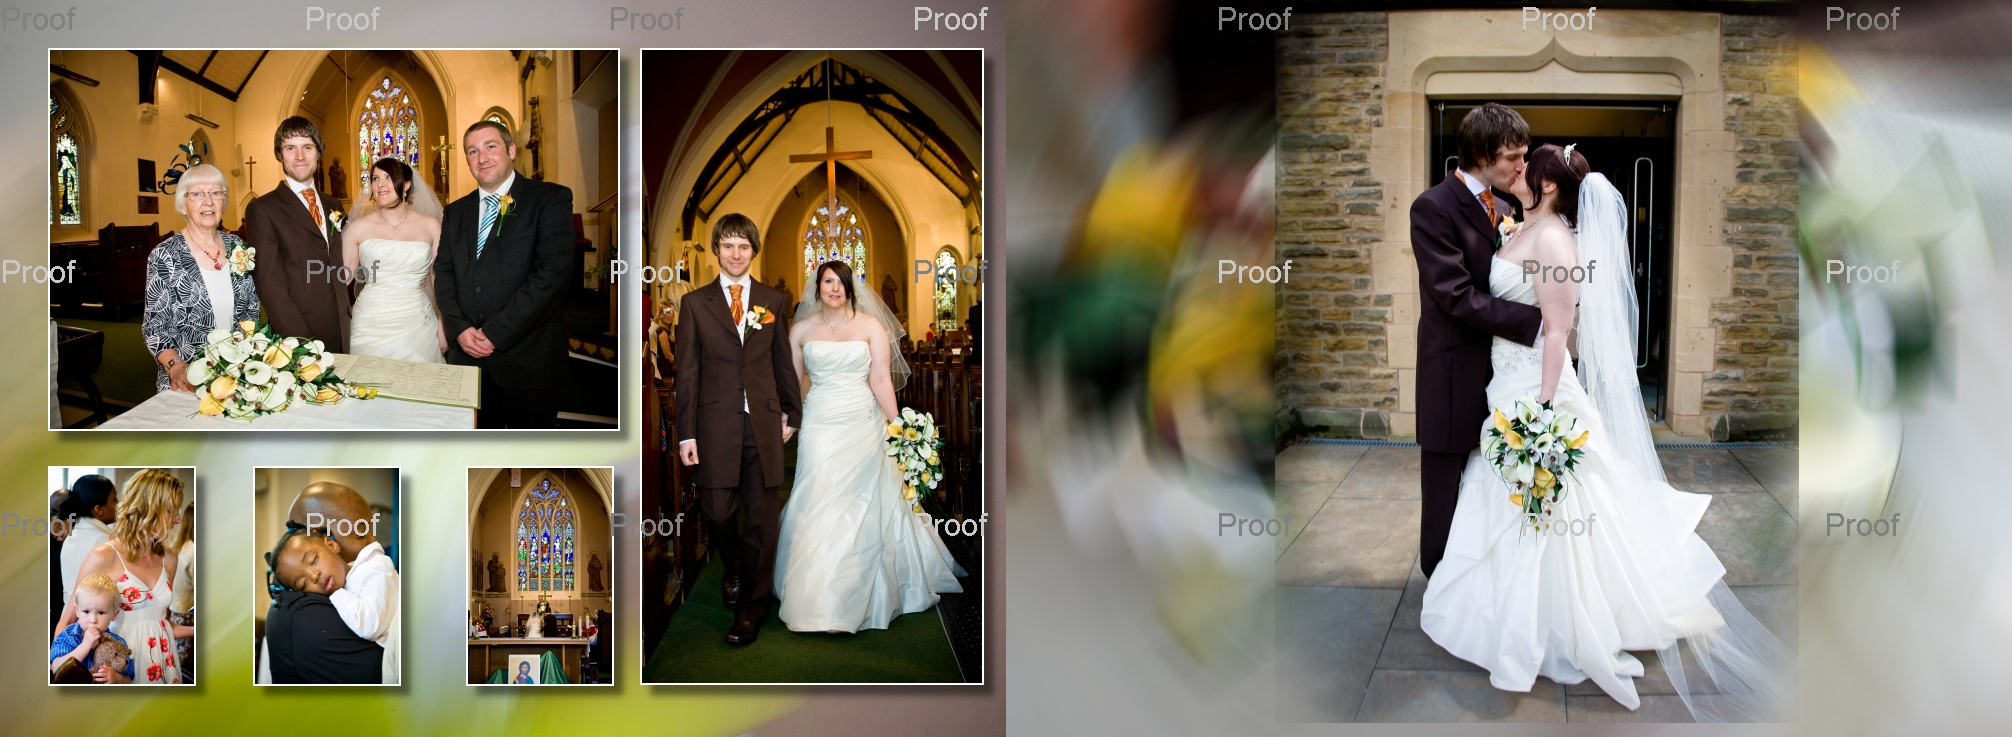 pages 20-21 of wedding storybook album with church wedding pictures